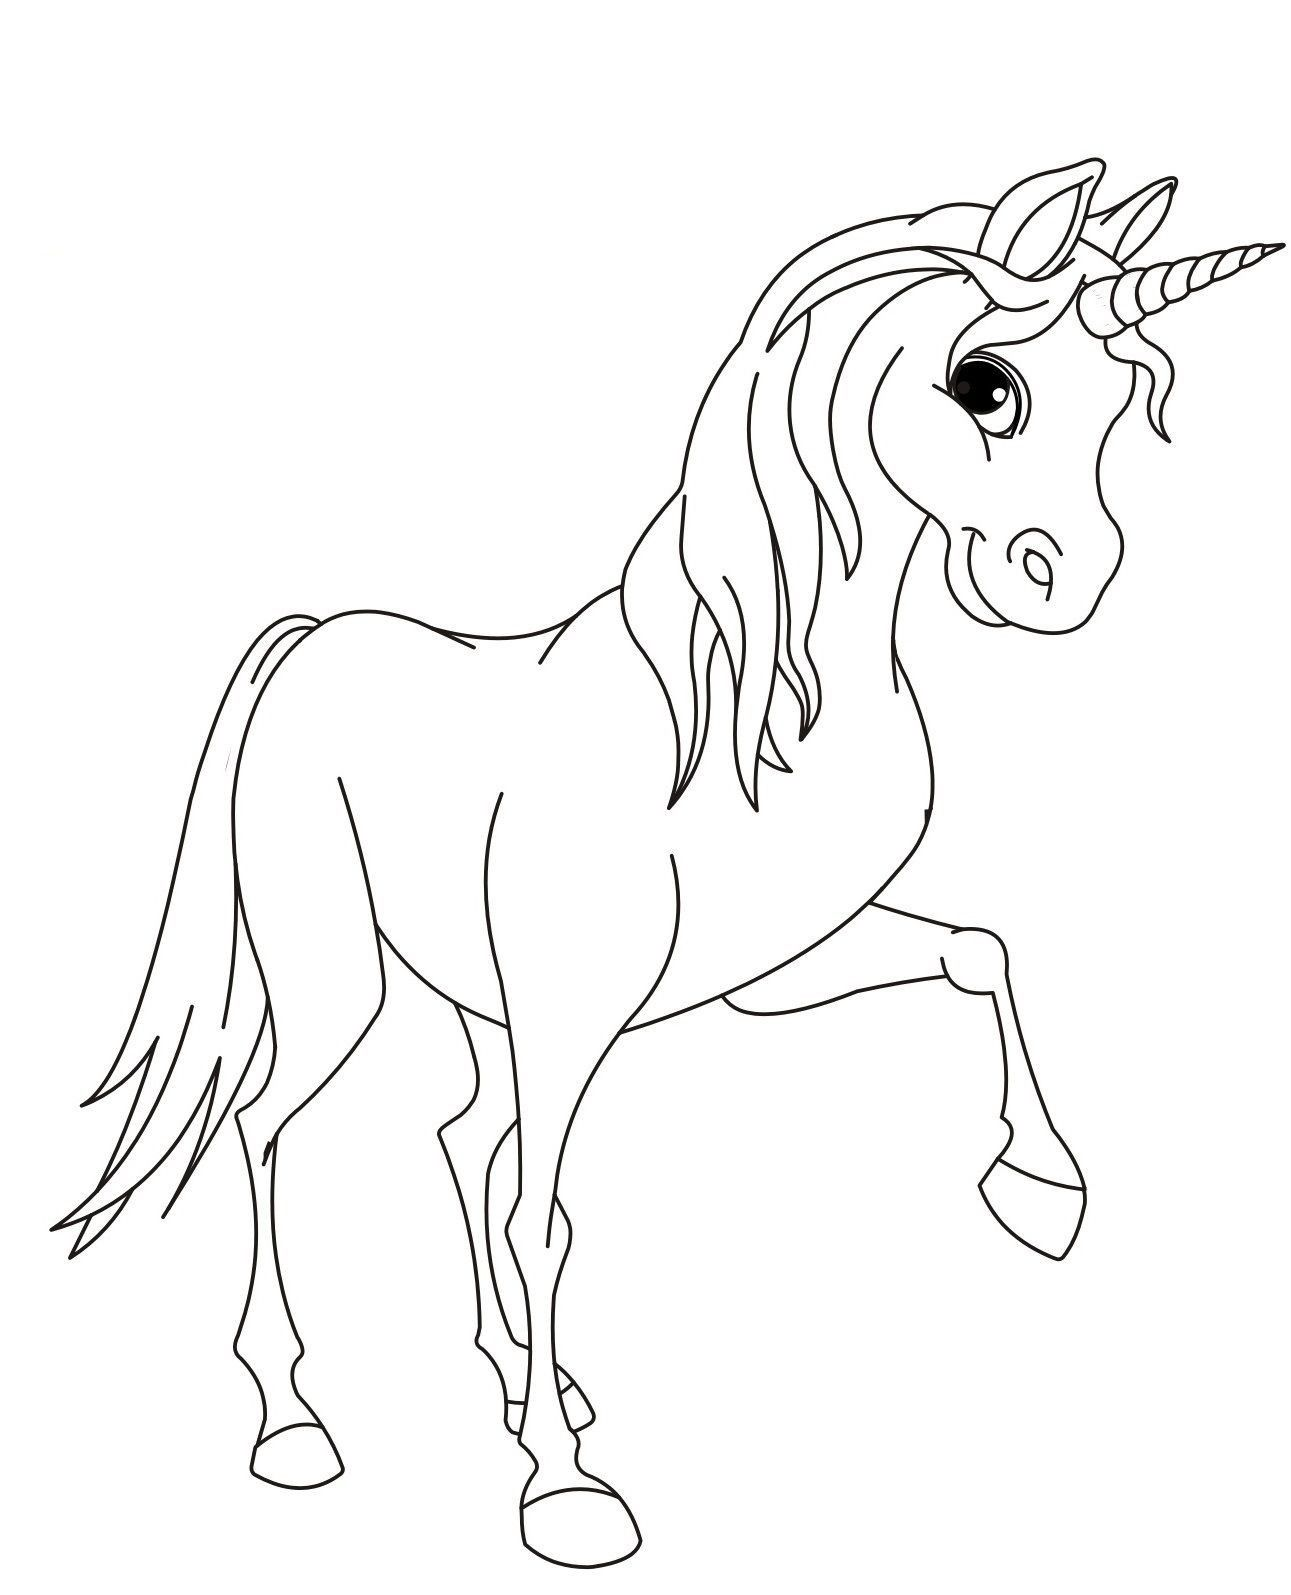 Neu Malvorlagen Zum Ausdrucken Einhorn Unicorn Coloring Pages Unicorn Images Coloring Pages